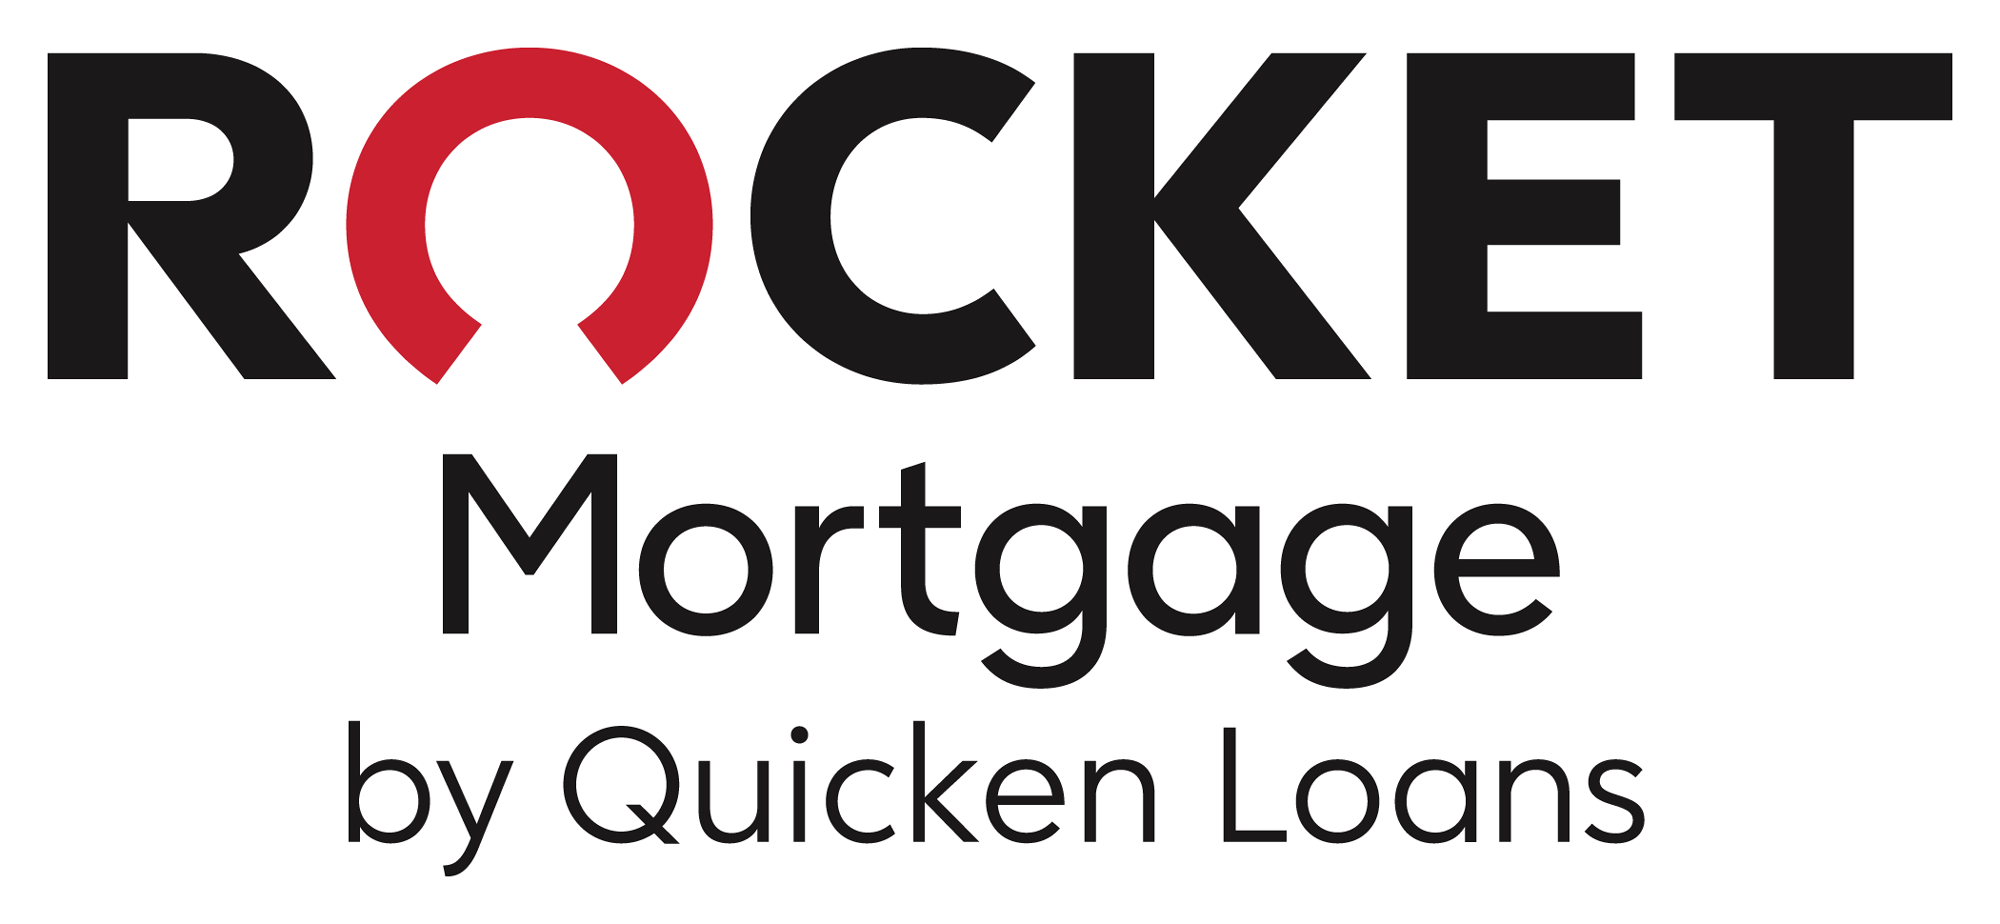 Rocket Mortgage by Quicken Loans id=